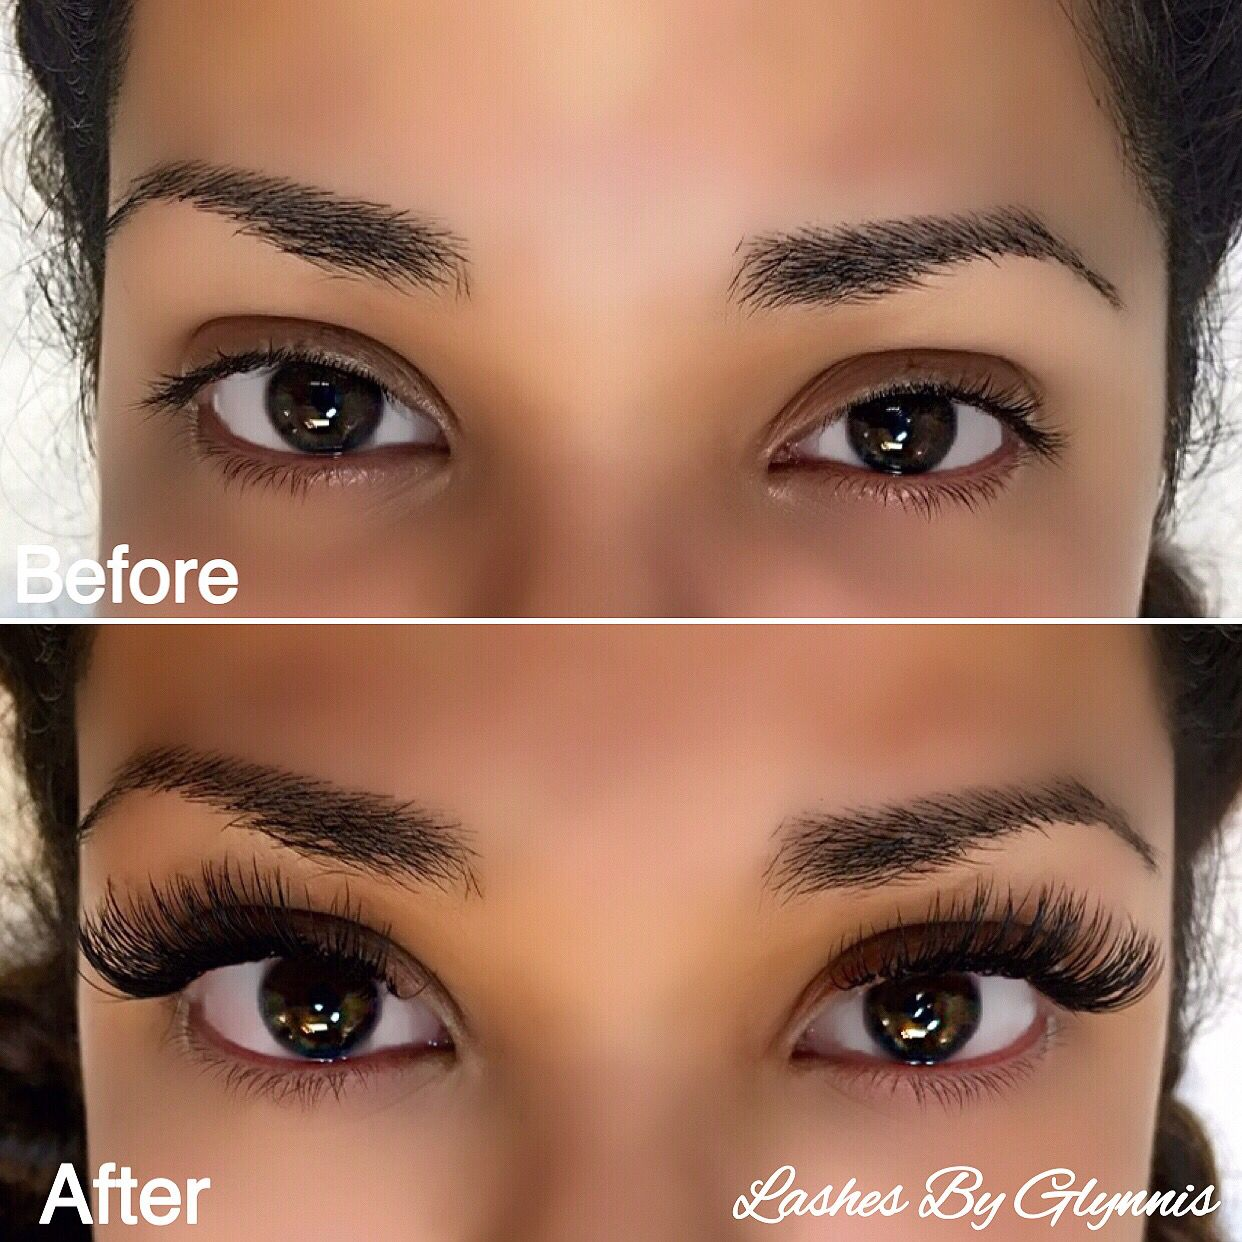 Pin by Microblading Training Center on Microblading Before ...